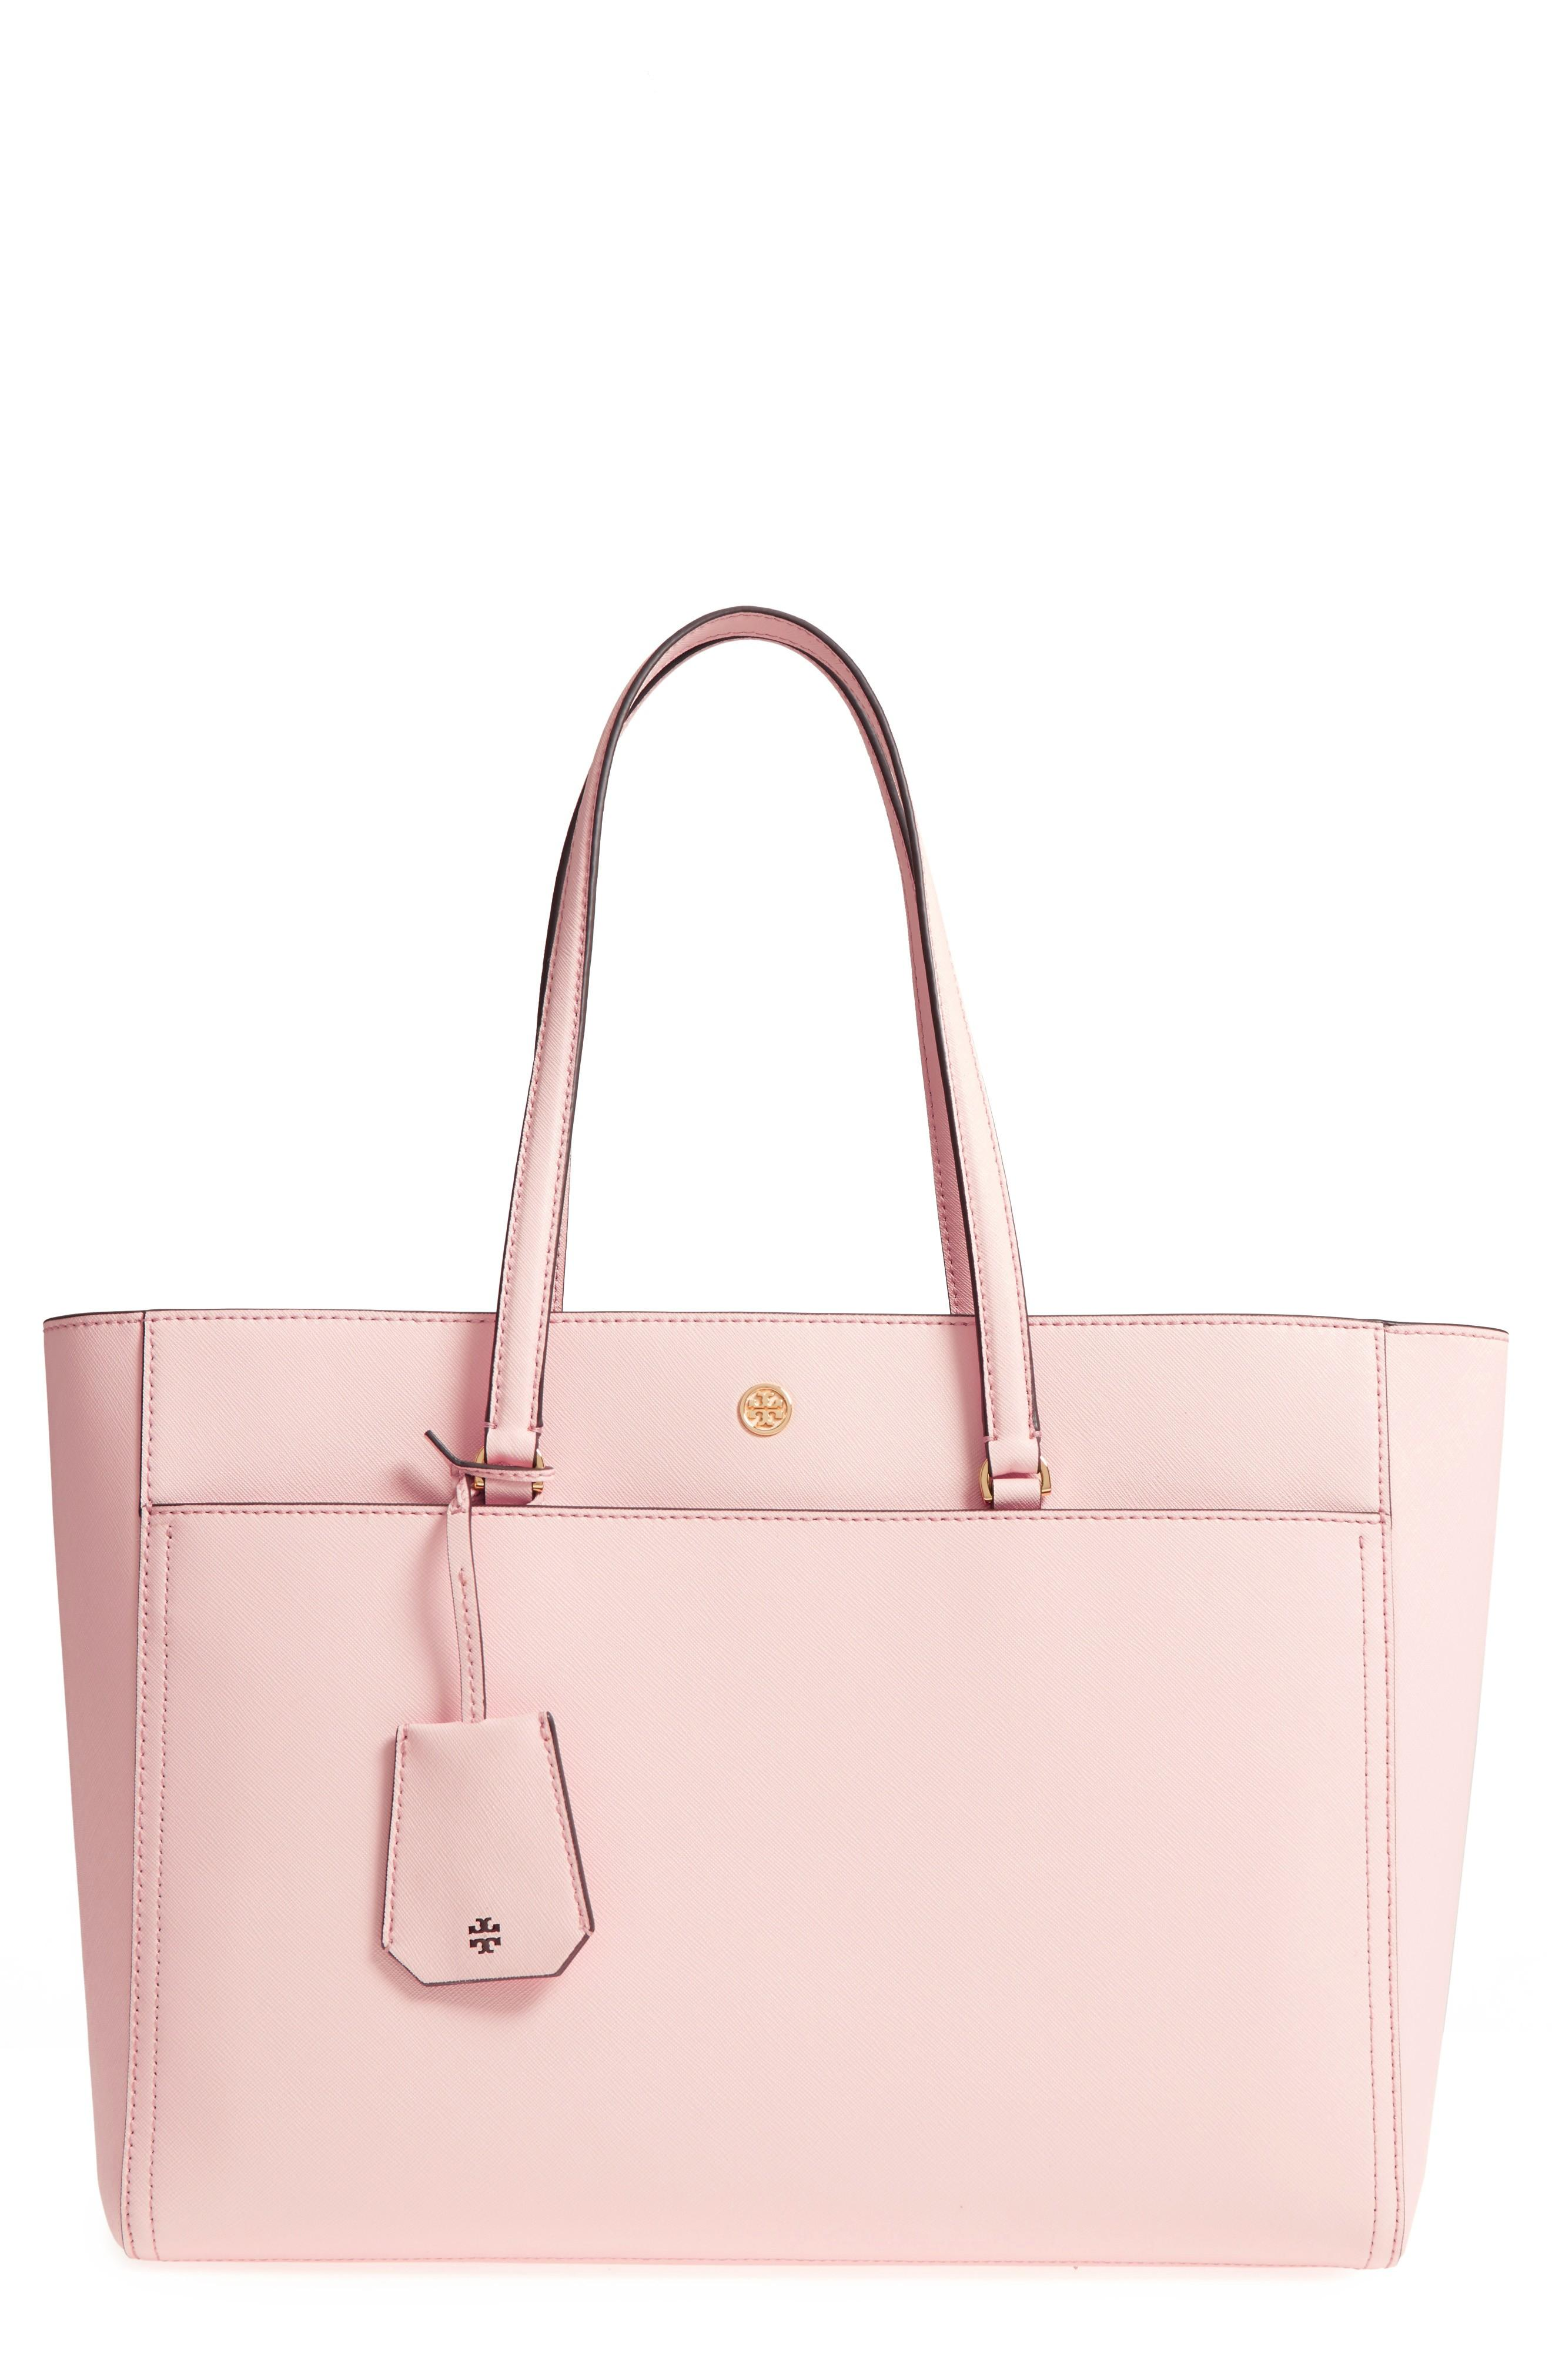 2c6ae39ec Tory Burch Robinson Leather Tote - Pink In Pale Apricot / Royal Navy ...